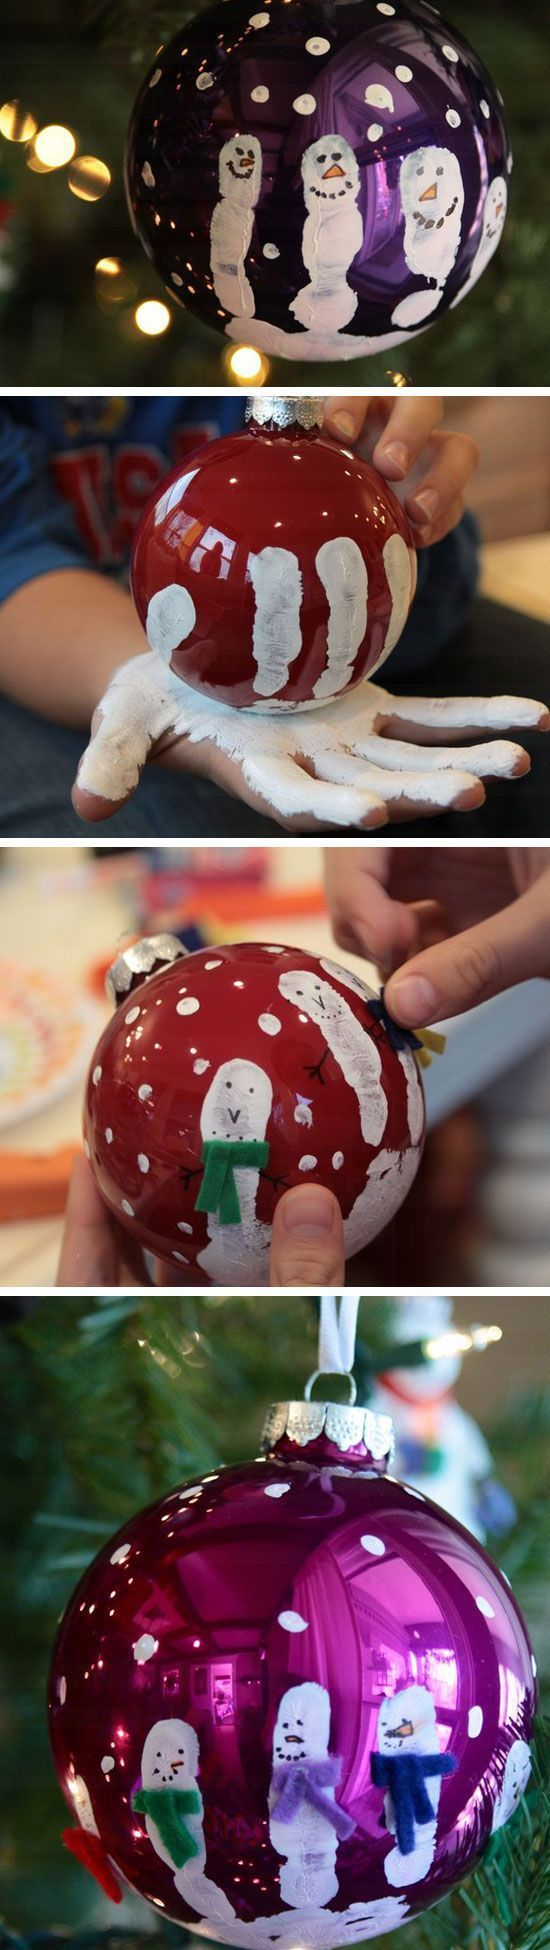 Diy christmas decorations ideas - Diy Christmas Craft Ideas For Kids Easy Handprint Ornament For Kids To Make